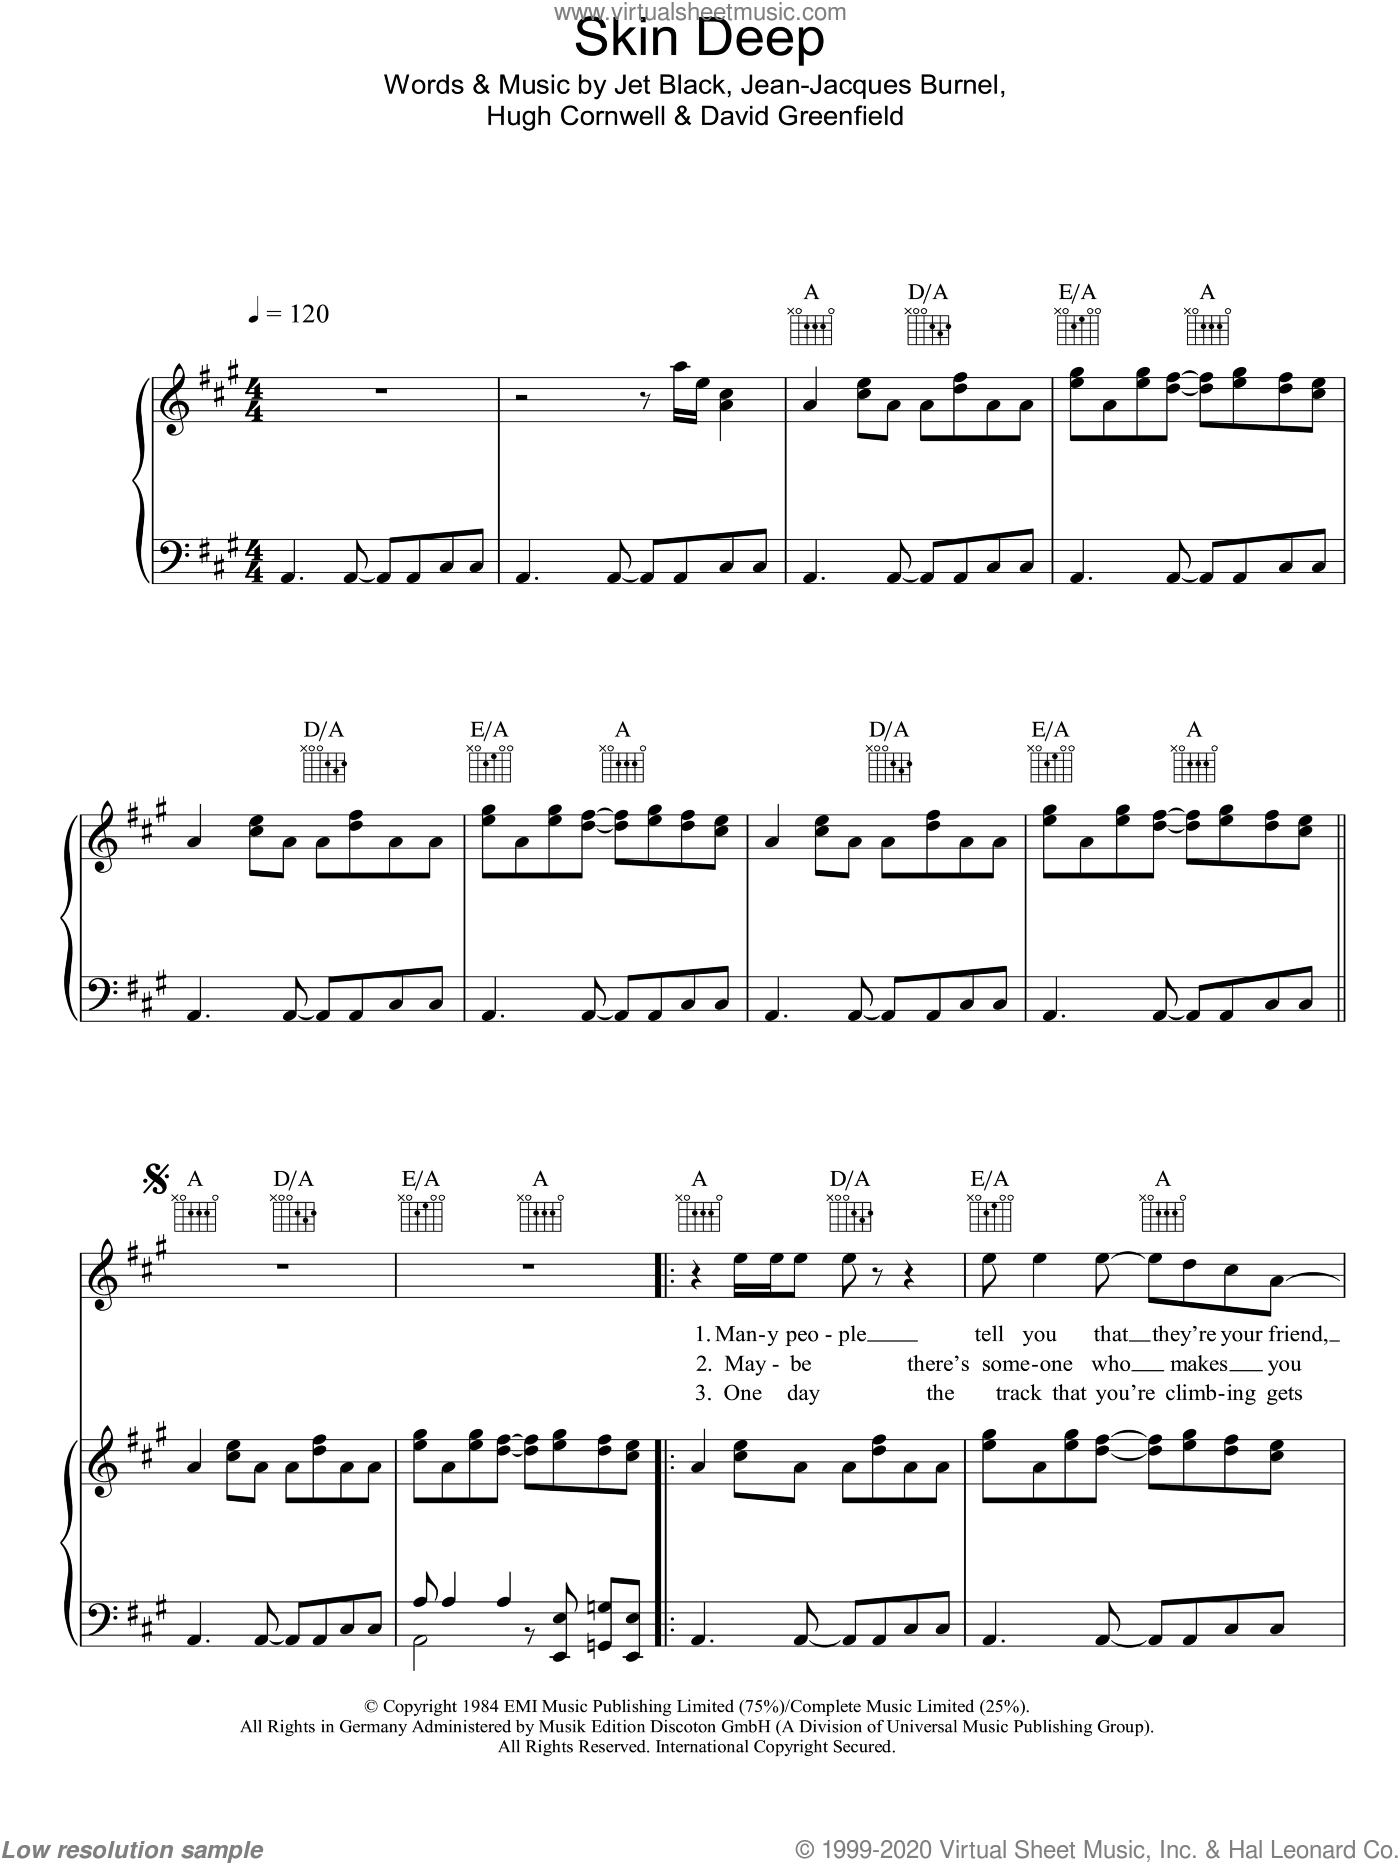 Skin Deep sheet music for voice, piano or guitar by The Stranglers, David Greenfield, Hugh Cornwell, Jean-Jacques Burnel and Jet Black, intermediate skill level